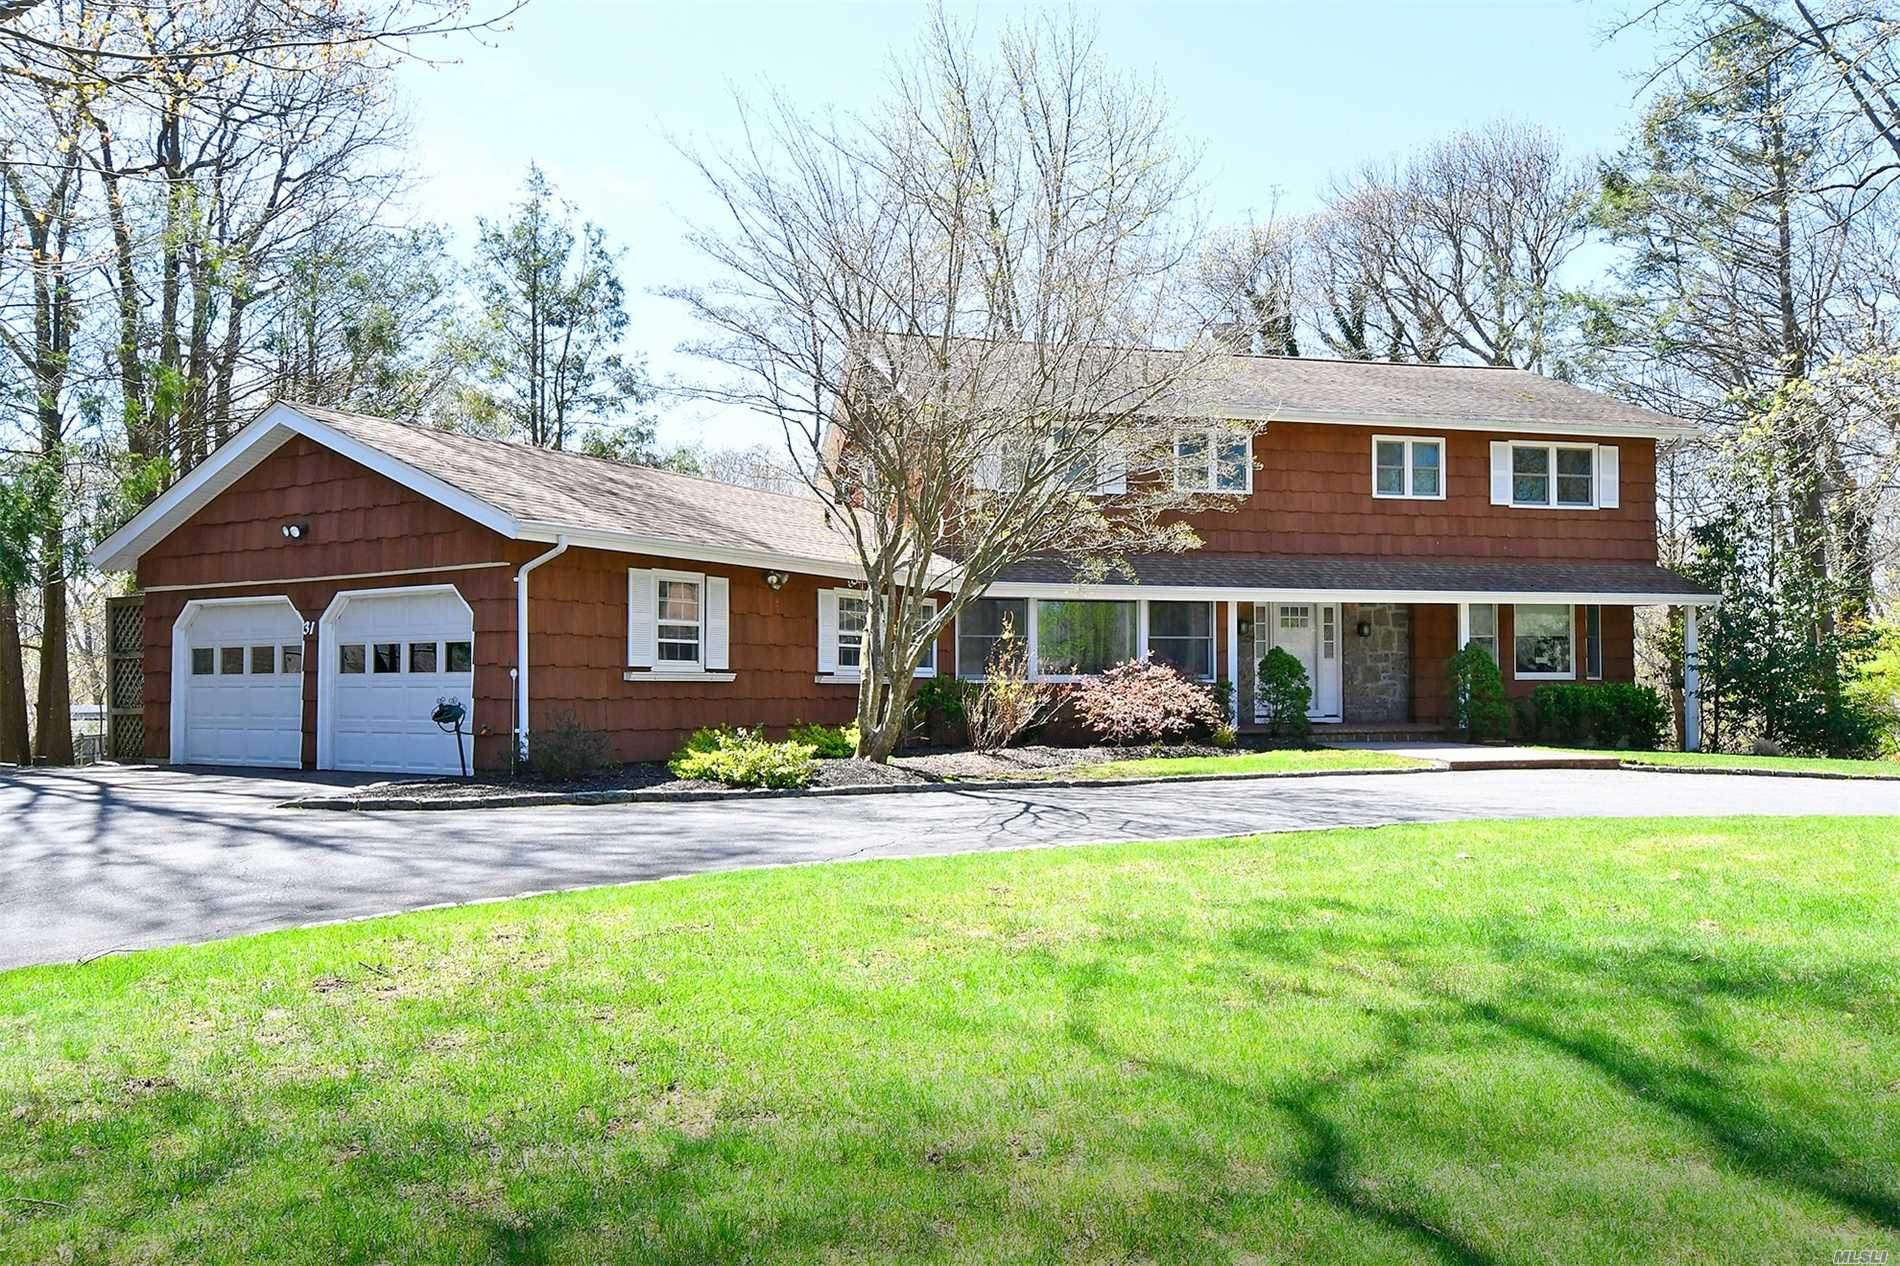 Beautiful expanded Point of Woods Colonial on oversize flat property.This warm & inviting home boasts rich wood floors that guide you through the gracious open layout. Entertaining is easy in the expanded banquet sized dining room. Pristine, well maintained home offers updated windows & AC, Nest systems, elegant moldings & newly refinished garage.Enjoy lush, flat oversized property from the gorgeous composite deck.Half Hollow Hills West.